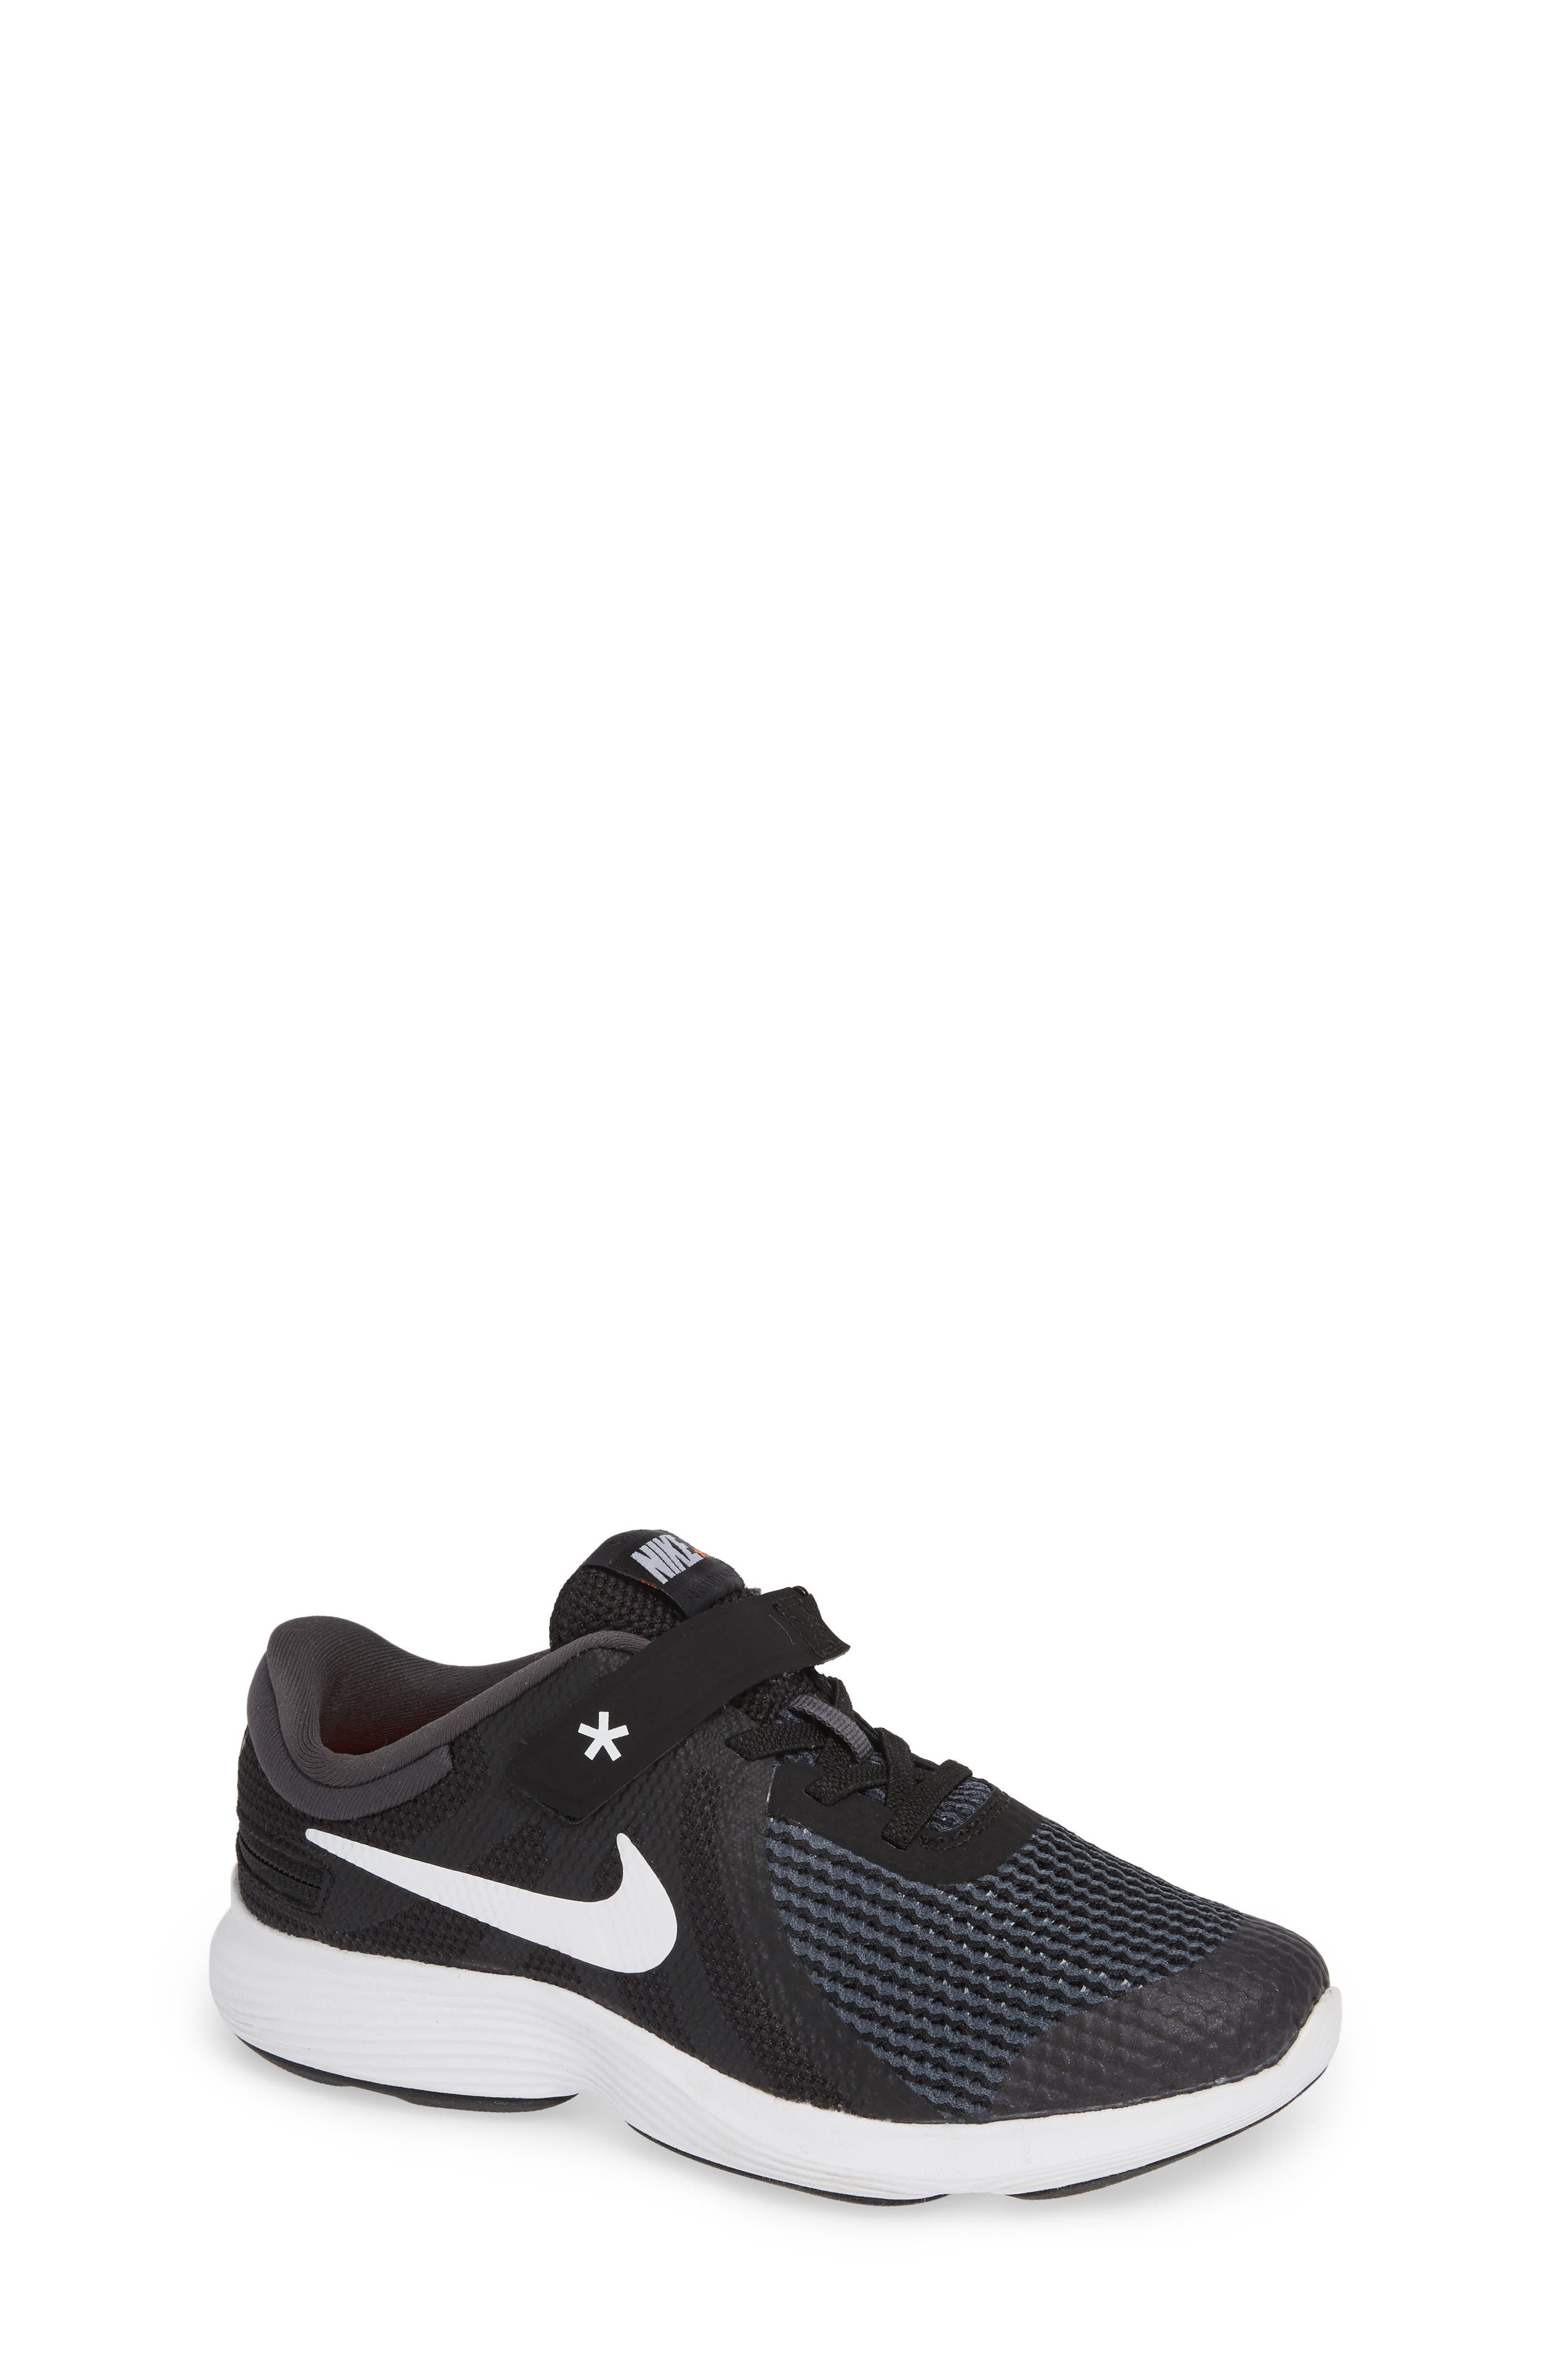 NIKE Revolution 4 Flyease 4E Sneaker, Main, color, BLACK ANTHRACITE CRIMSON